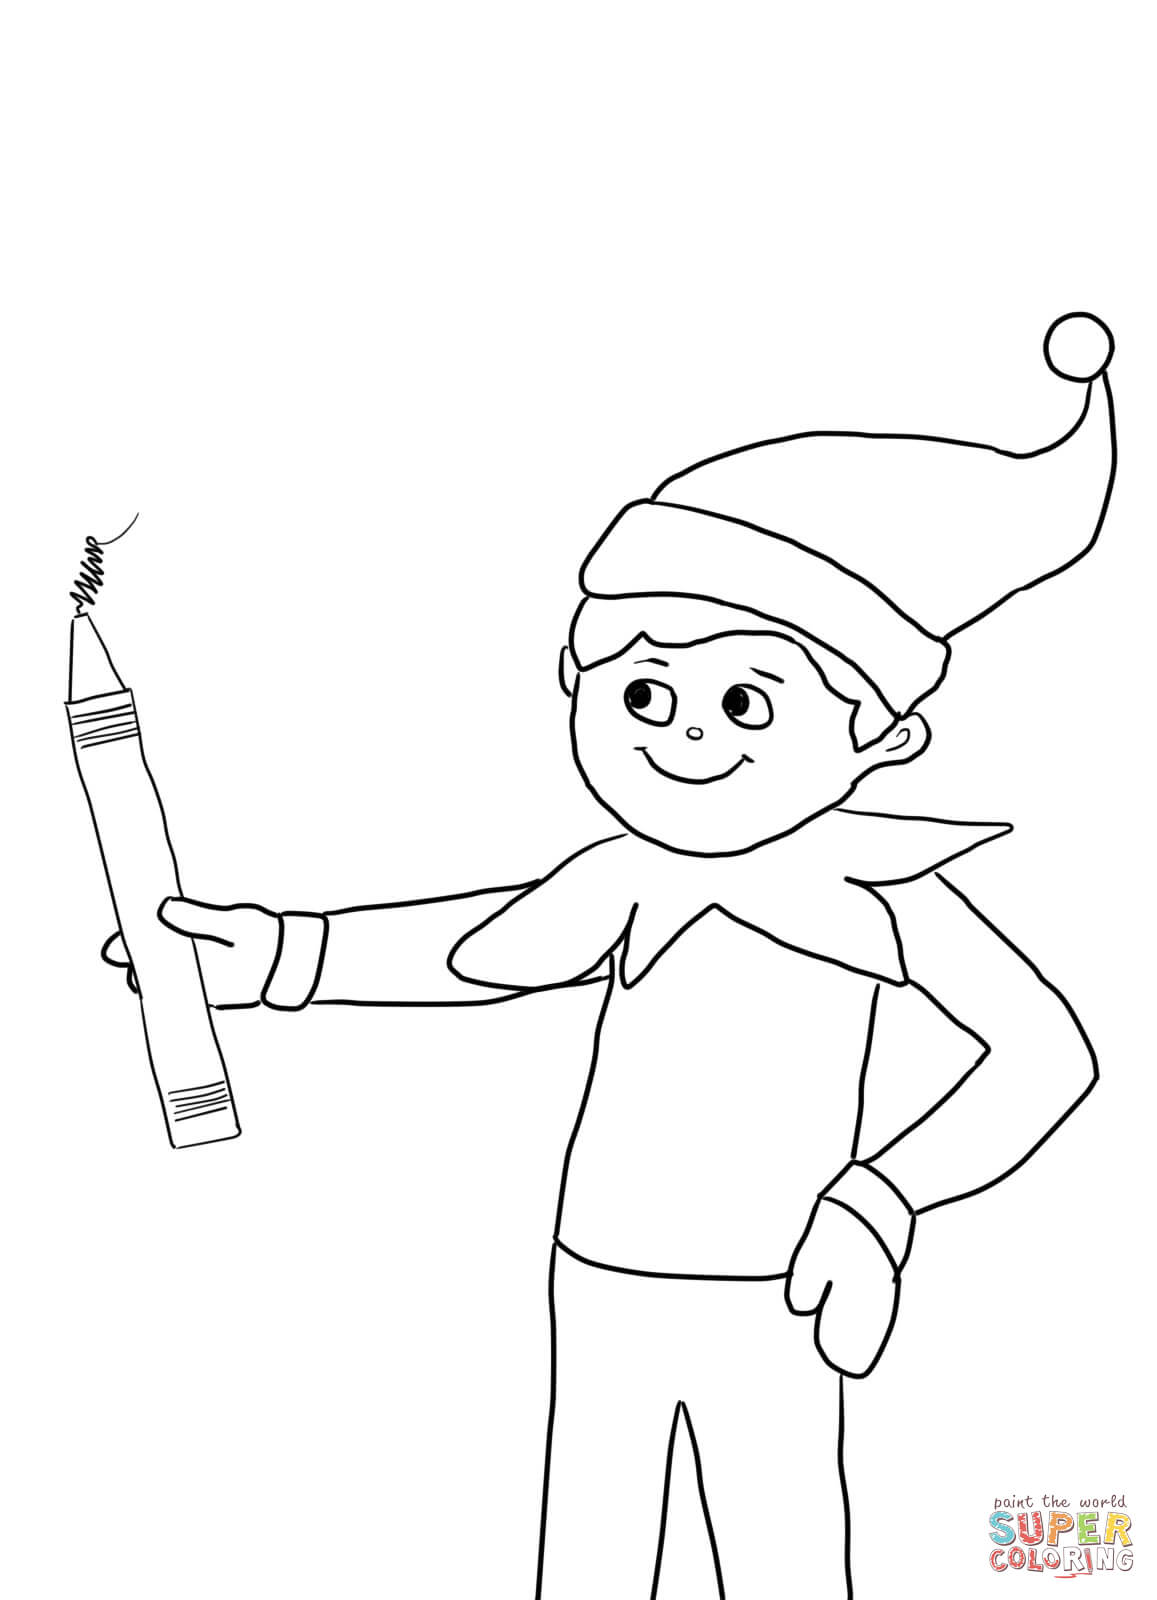 Elf On The Shelf Printable Coloring Pages Coloring Home On The Shelf Coloring Page